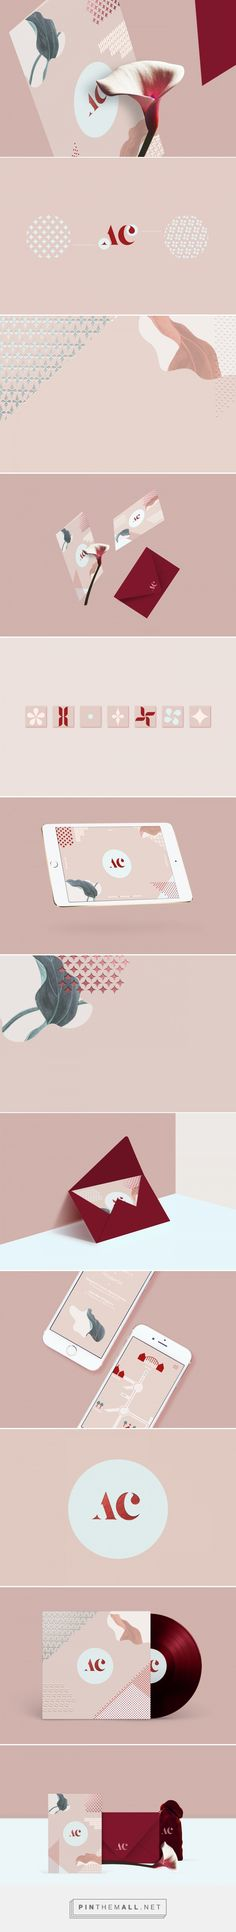 AC on Behance - crea